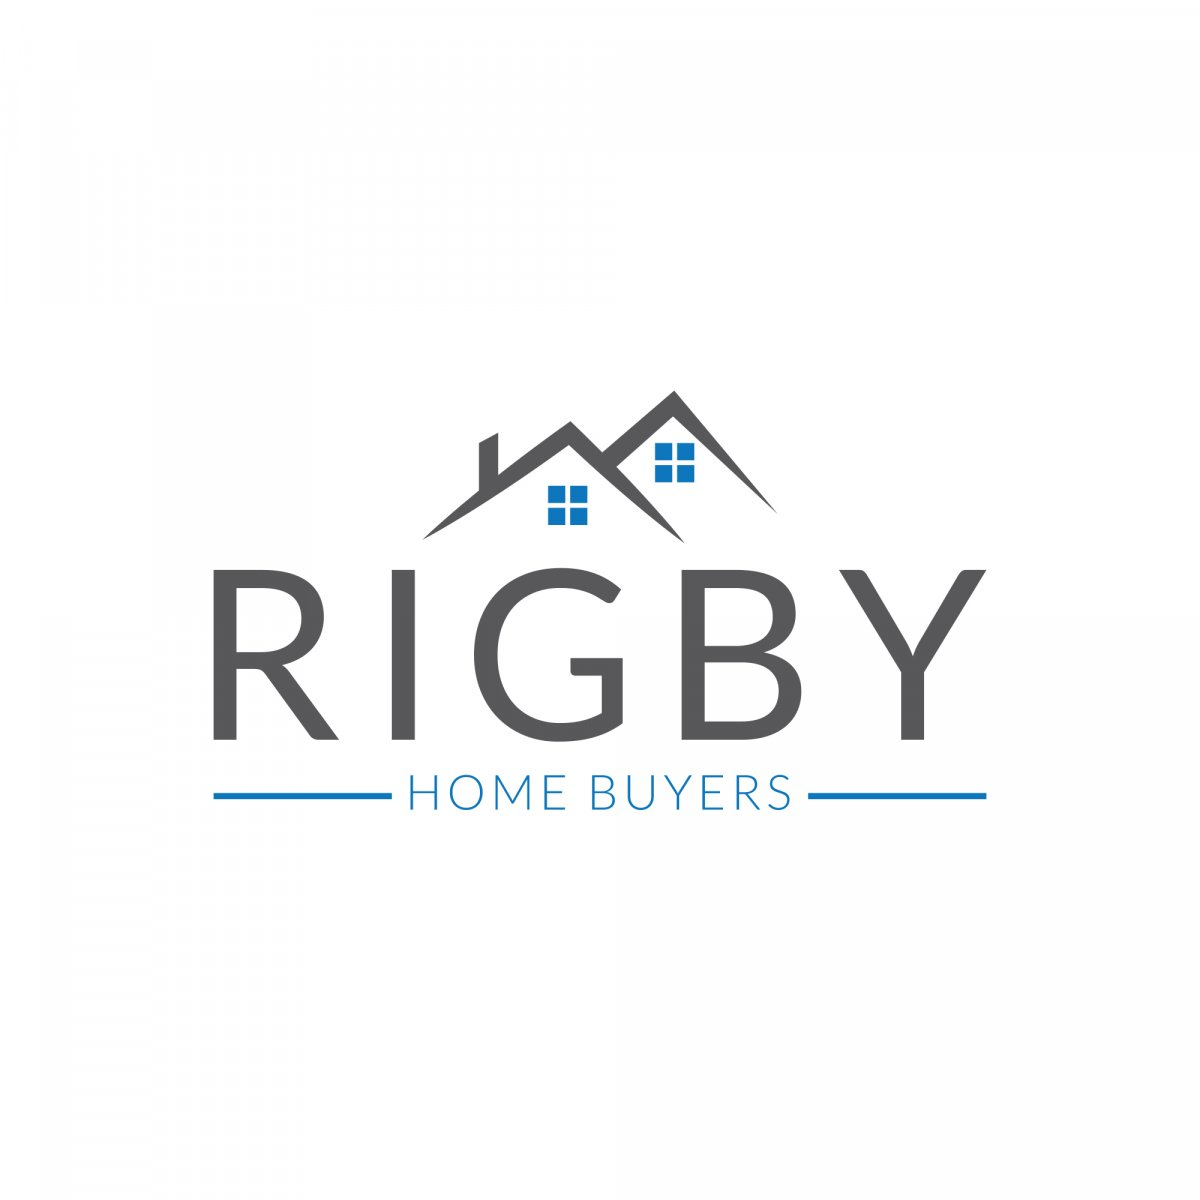 Rigby Home Buyers logo